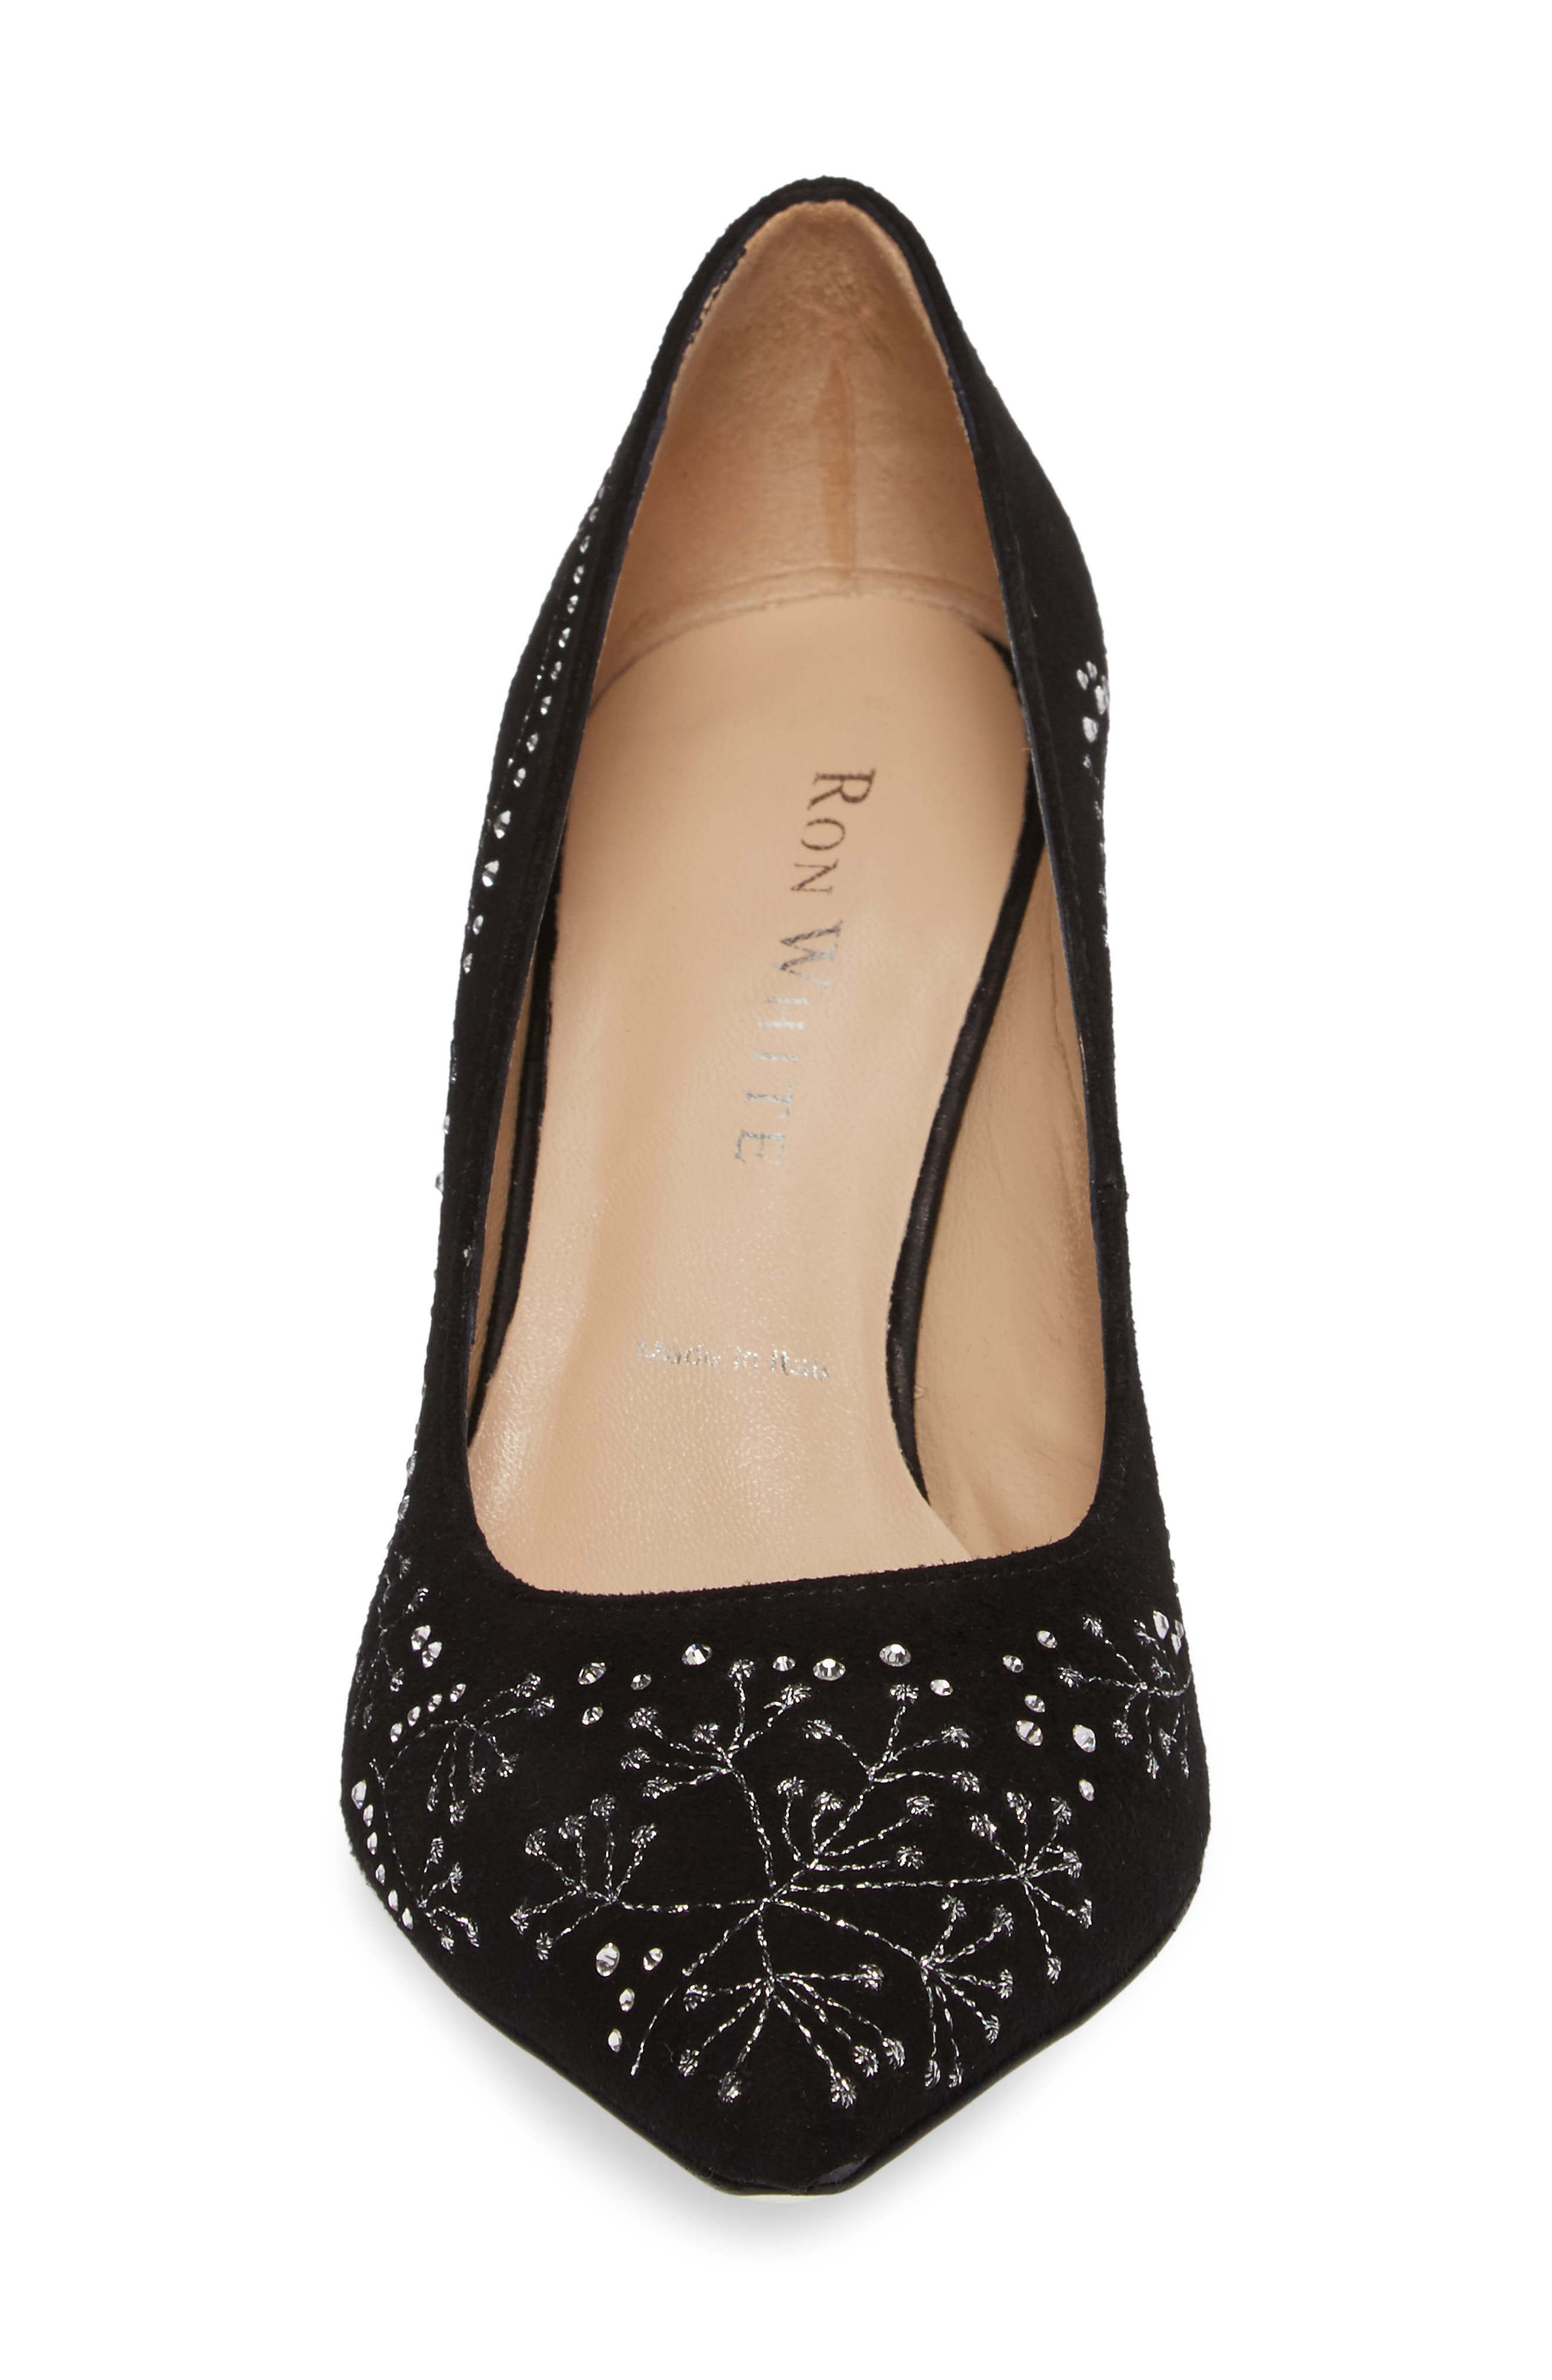 Carla Crystal Embellished Pump,                             Alternate thumbnail 4, color,                             001